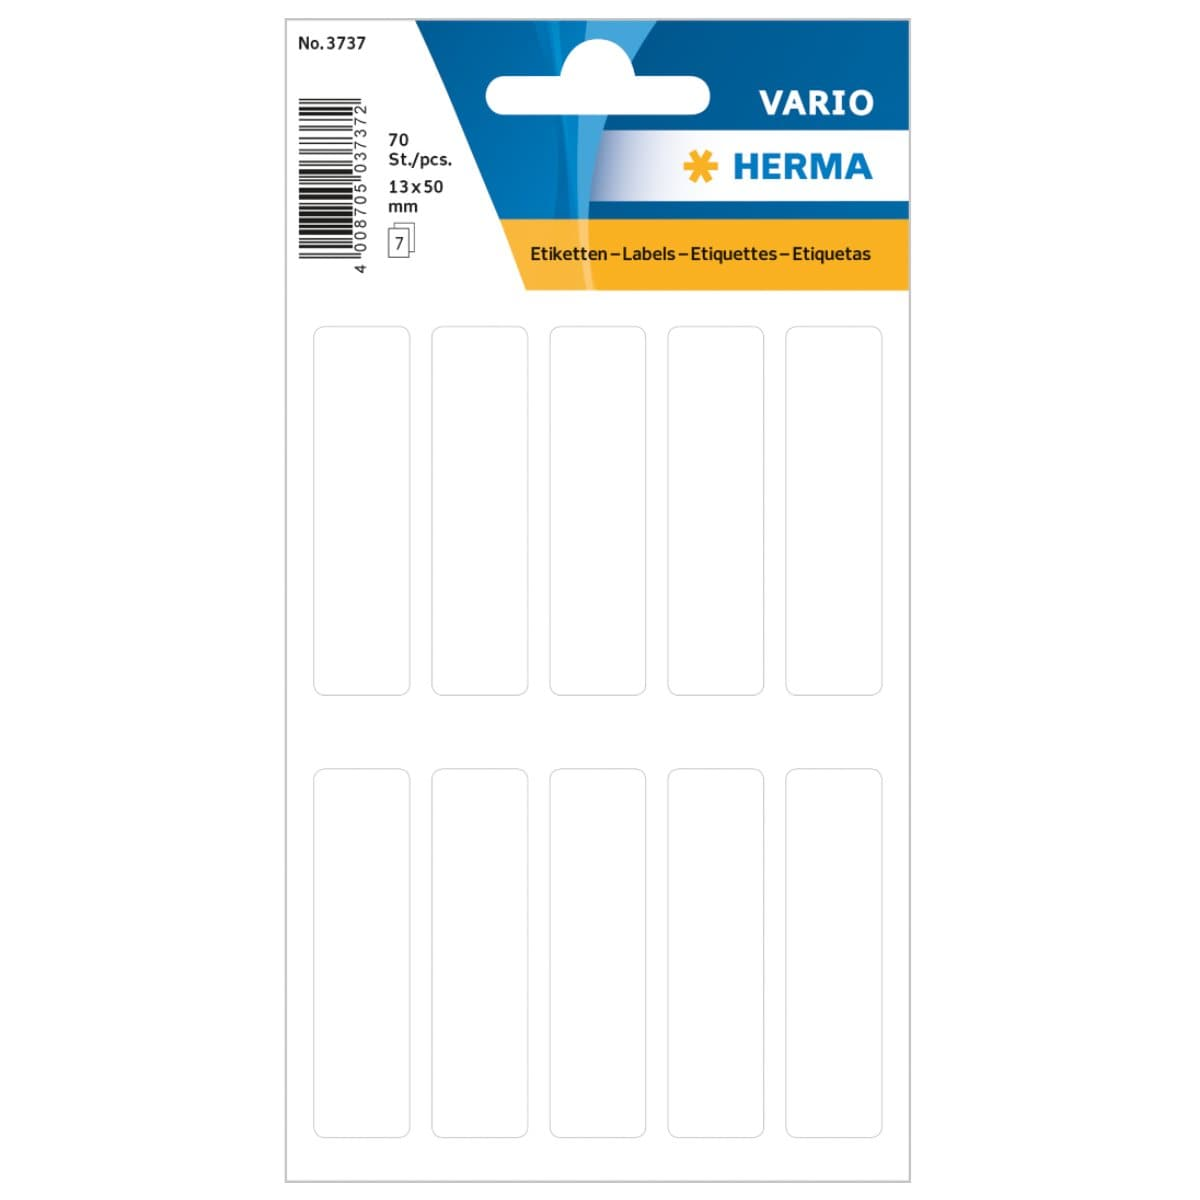 Herma Vario Sticker Labels, 13 x 50 mm, 70/pack, White